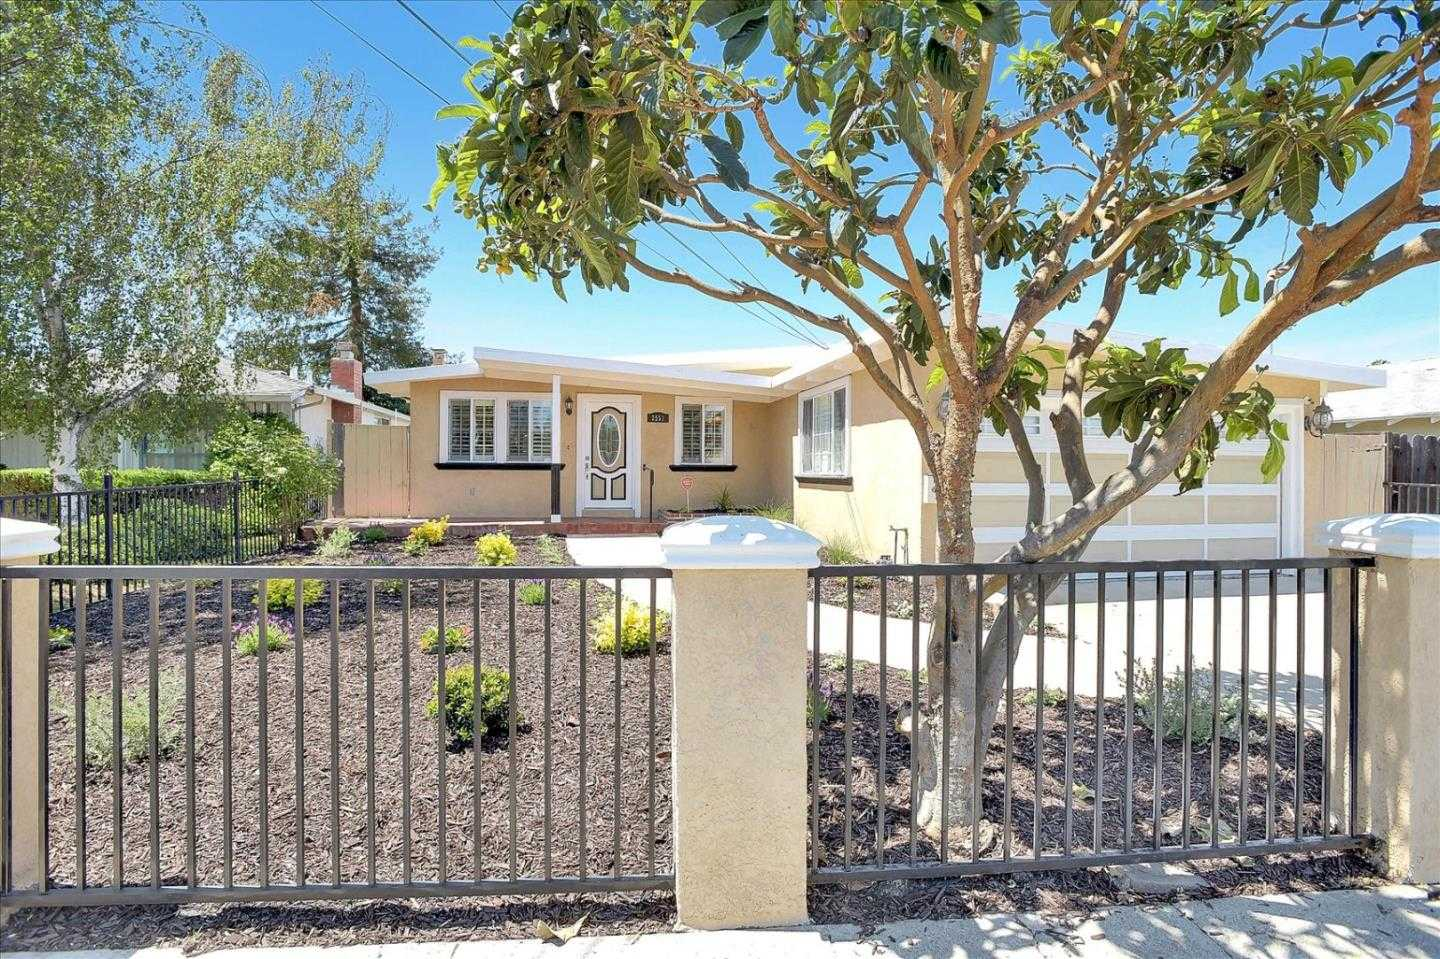 $1,000,000 - 3Br/2Ba -  for Sale in East Palo Alto